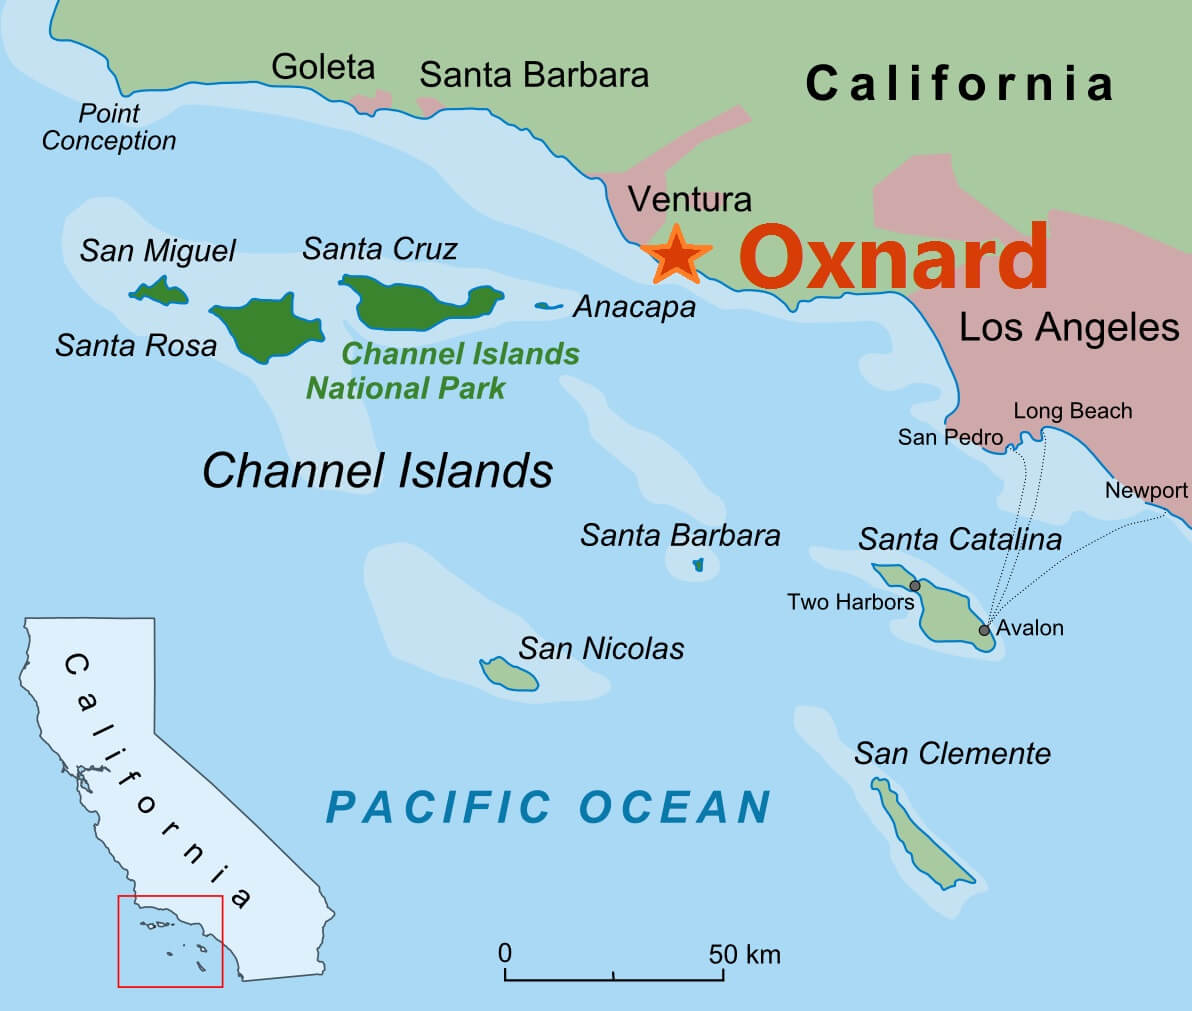 Pacific Coast Route Ventura And Oxnard California ROAD TRIP USA - California national parks usa map